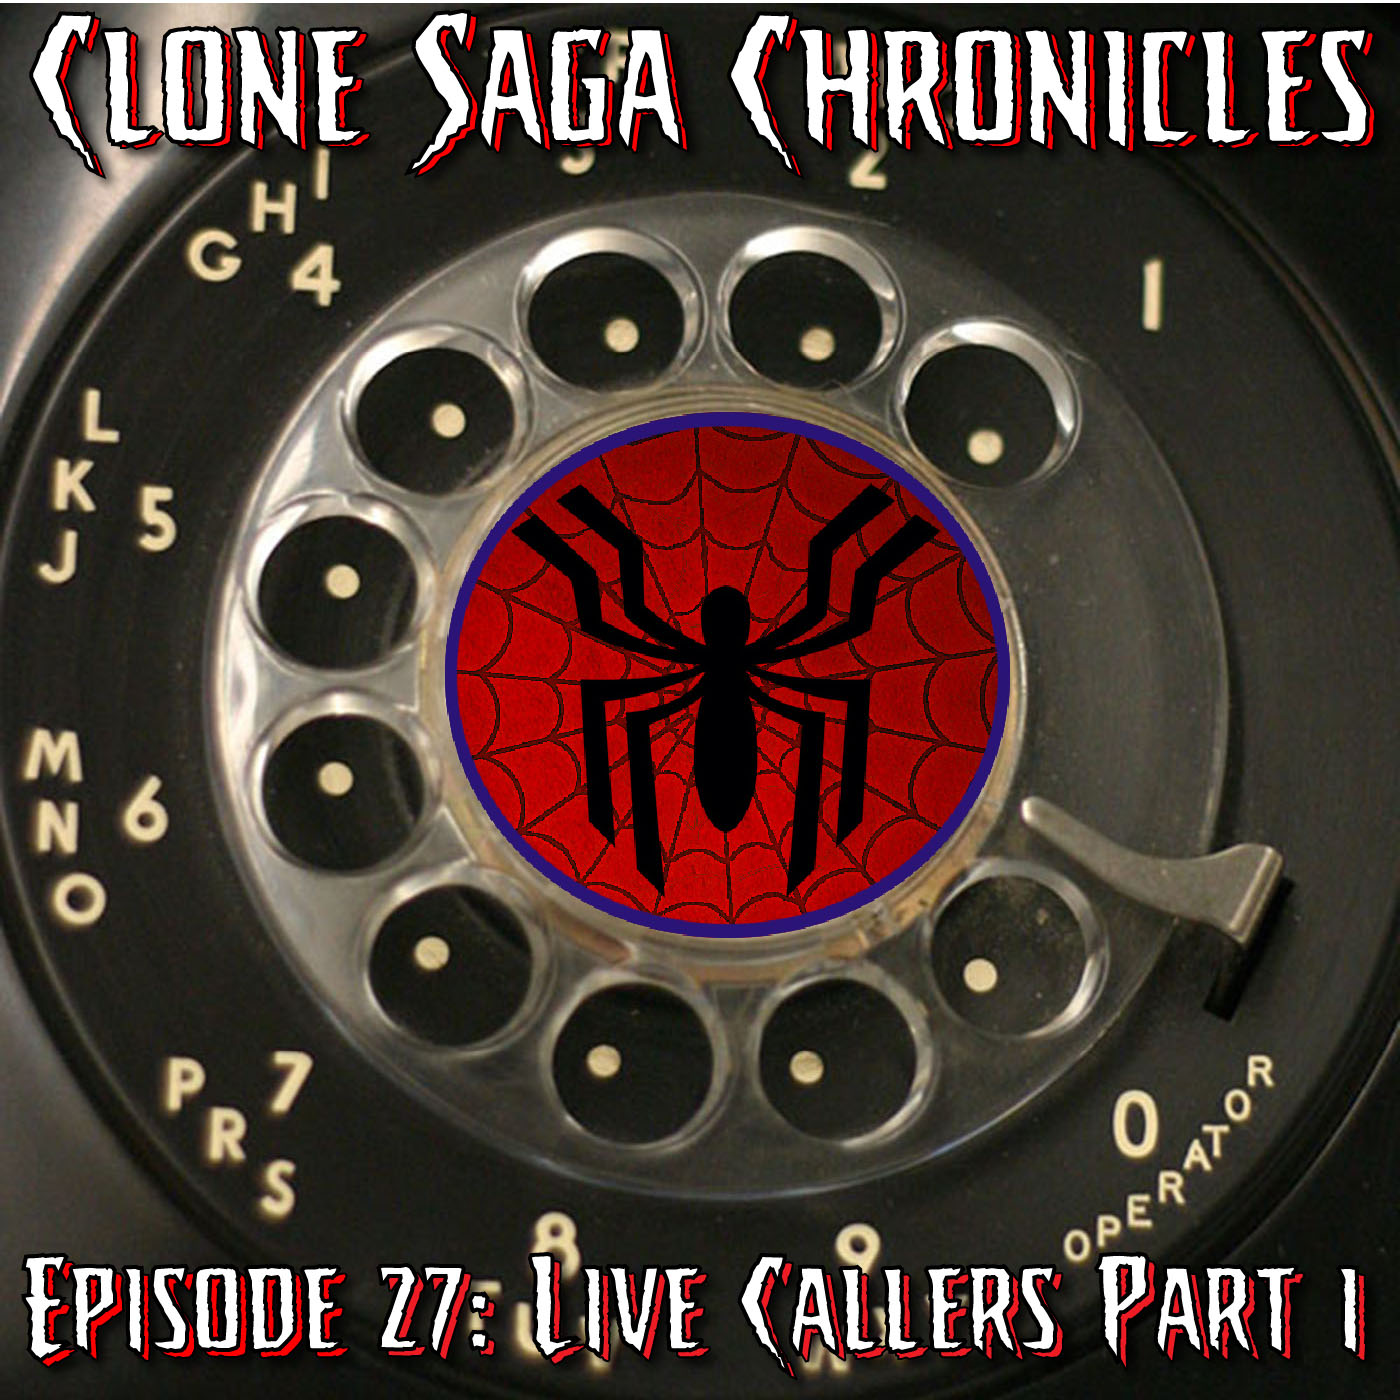 CSC Episode 27: Live Callers Part 1 (15th Site Anniversary Special)